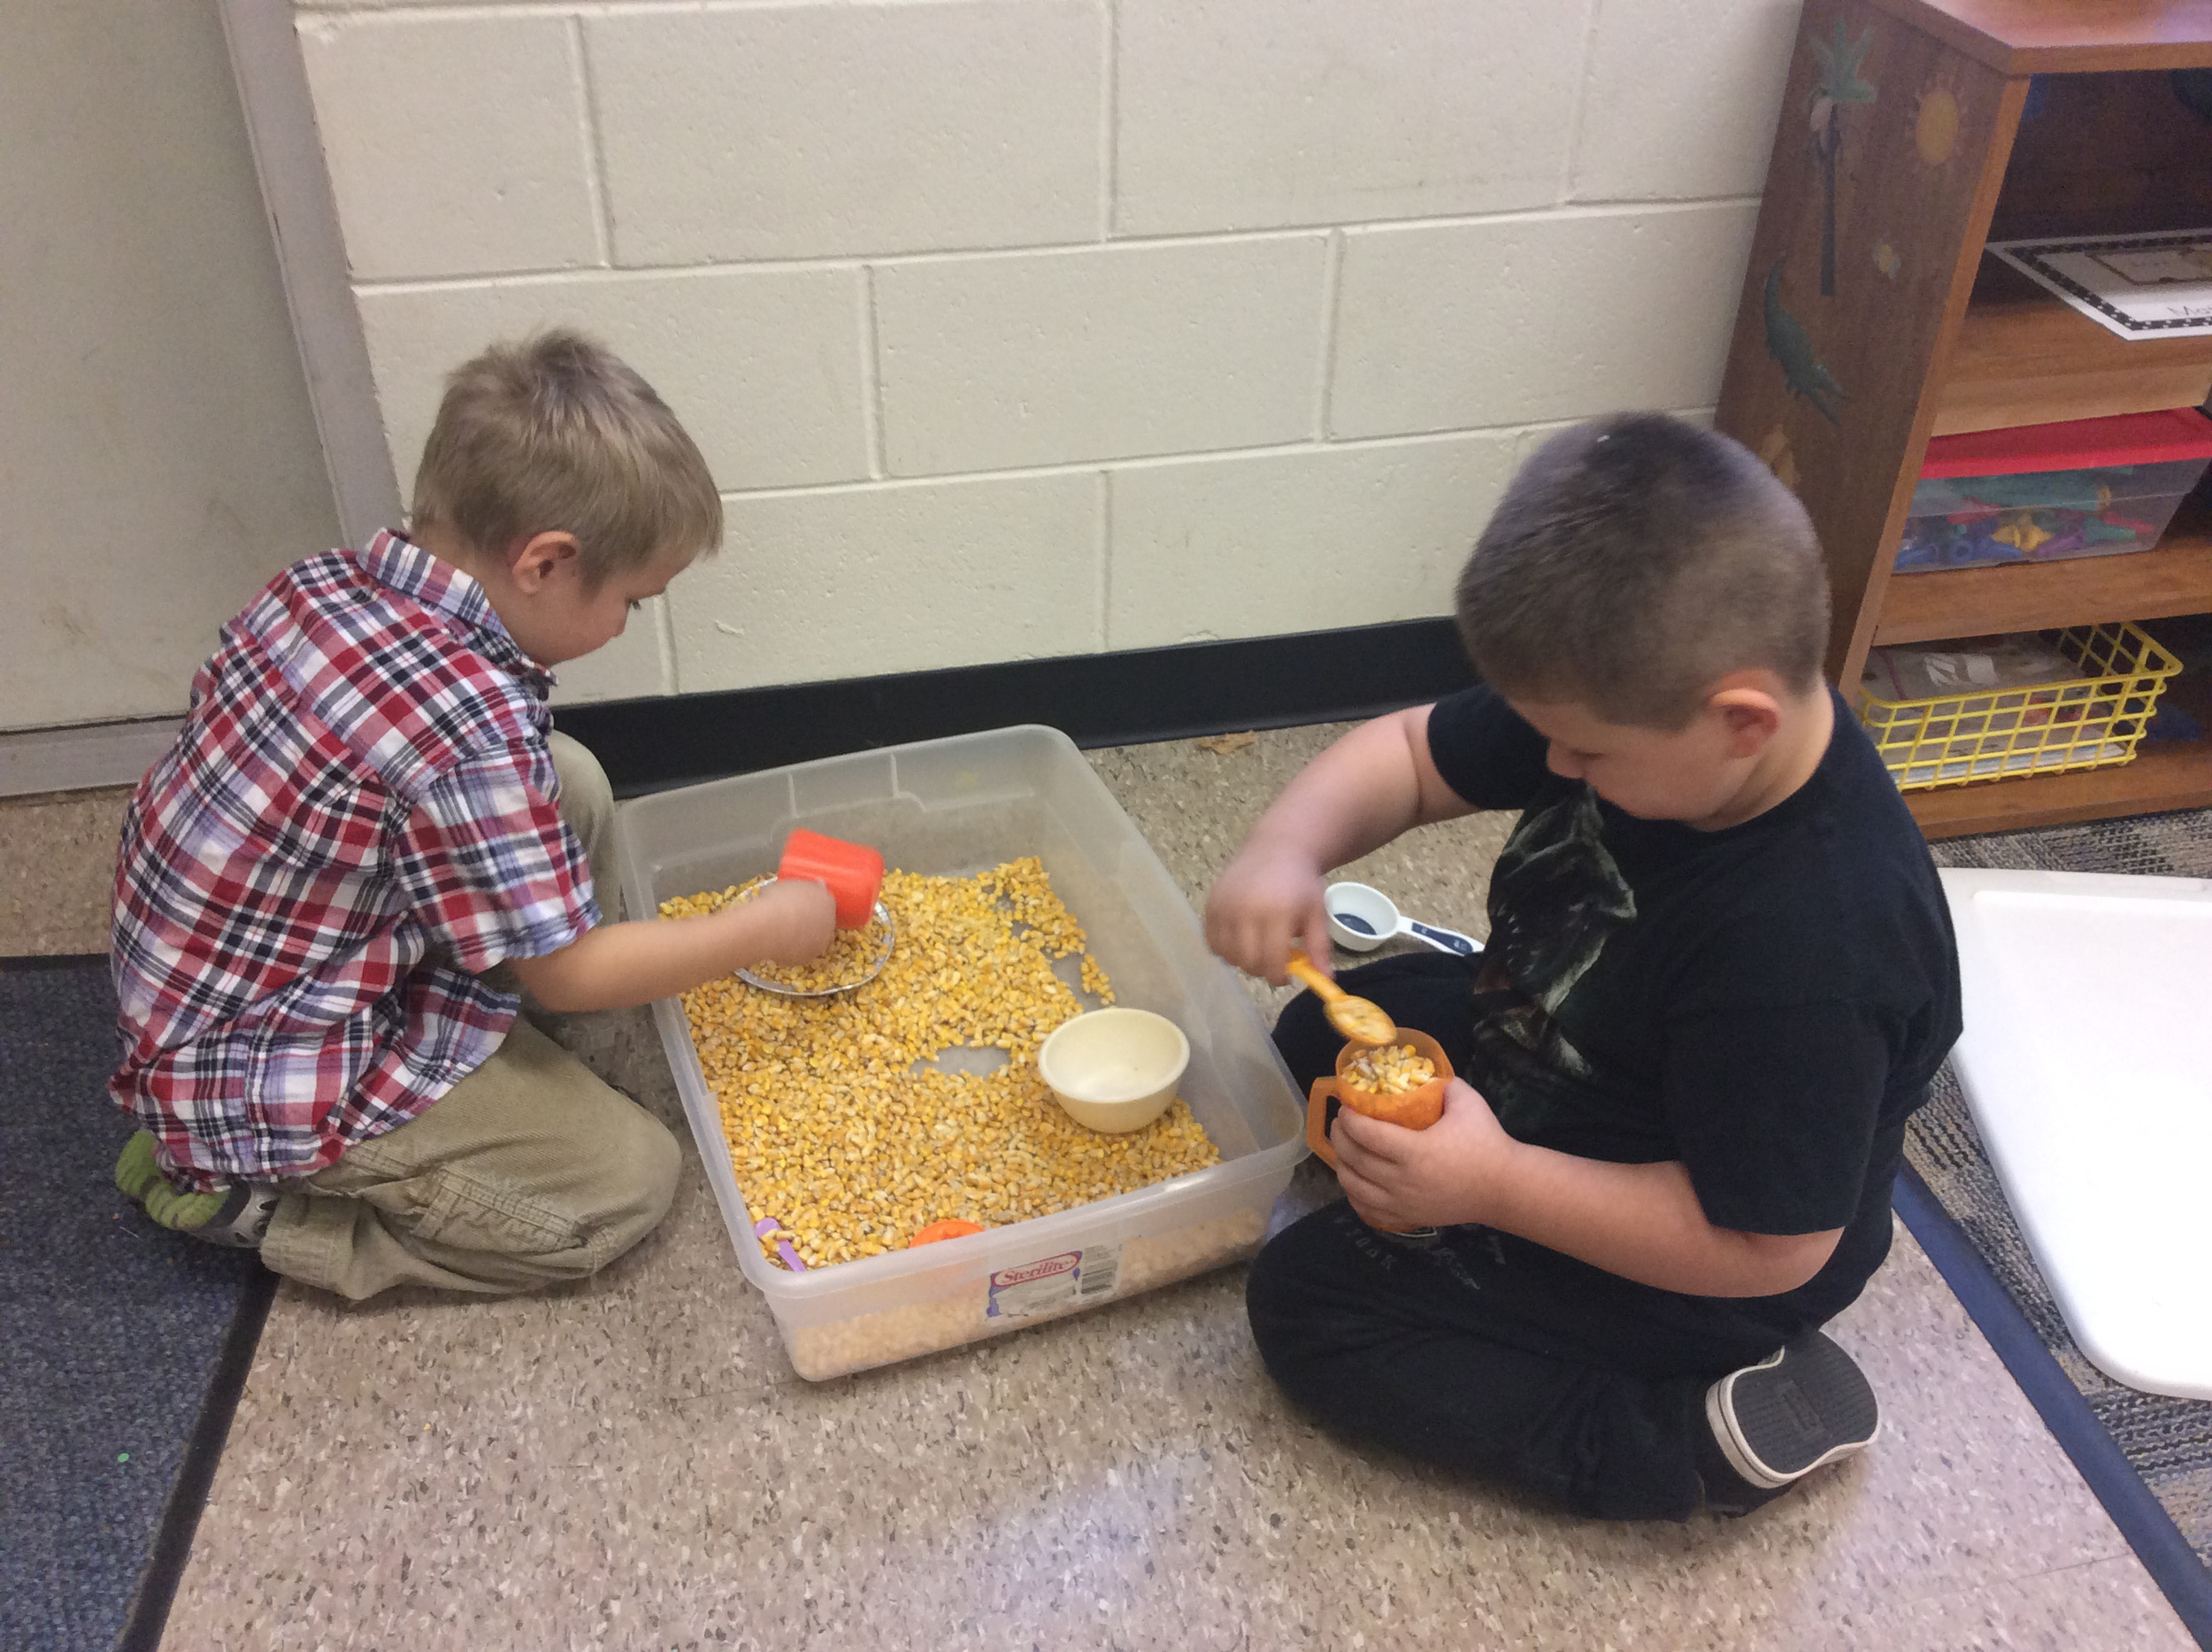 Scooping and pouring corn.